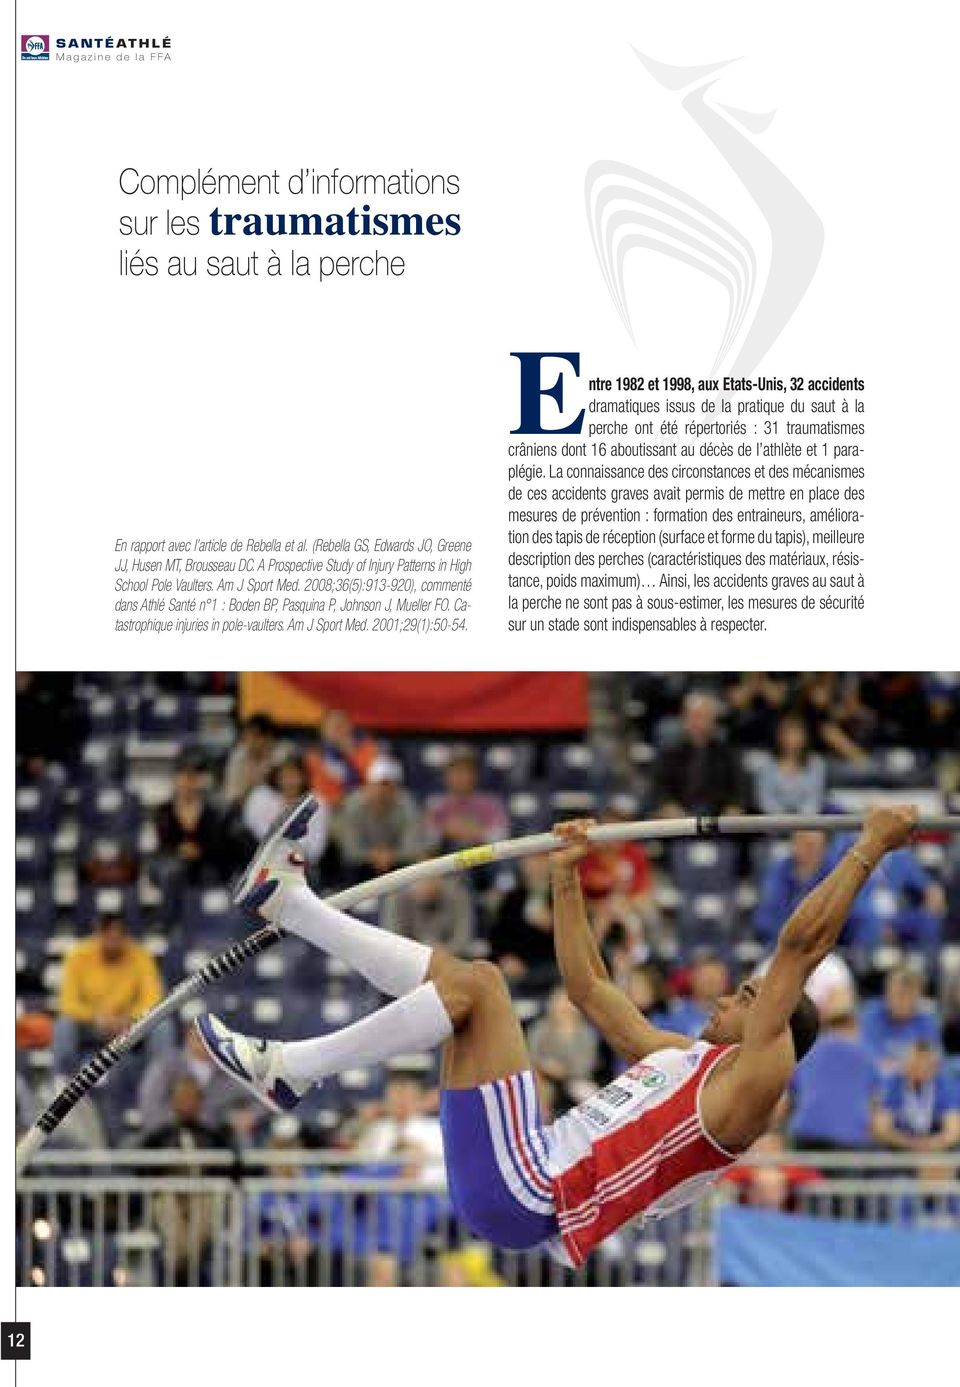 Catastrophique injuries in pole-vaulters. Am J Sport Med. 2001;29(1):50-54.